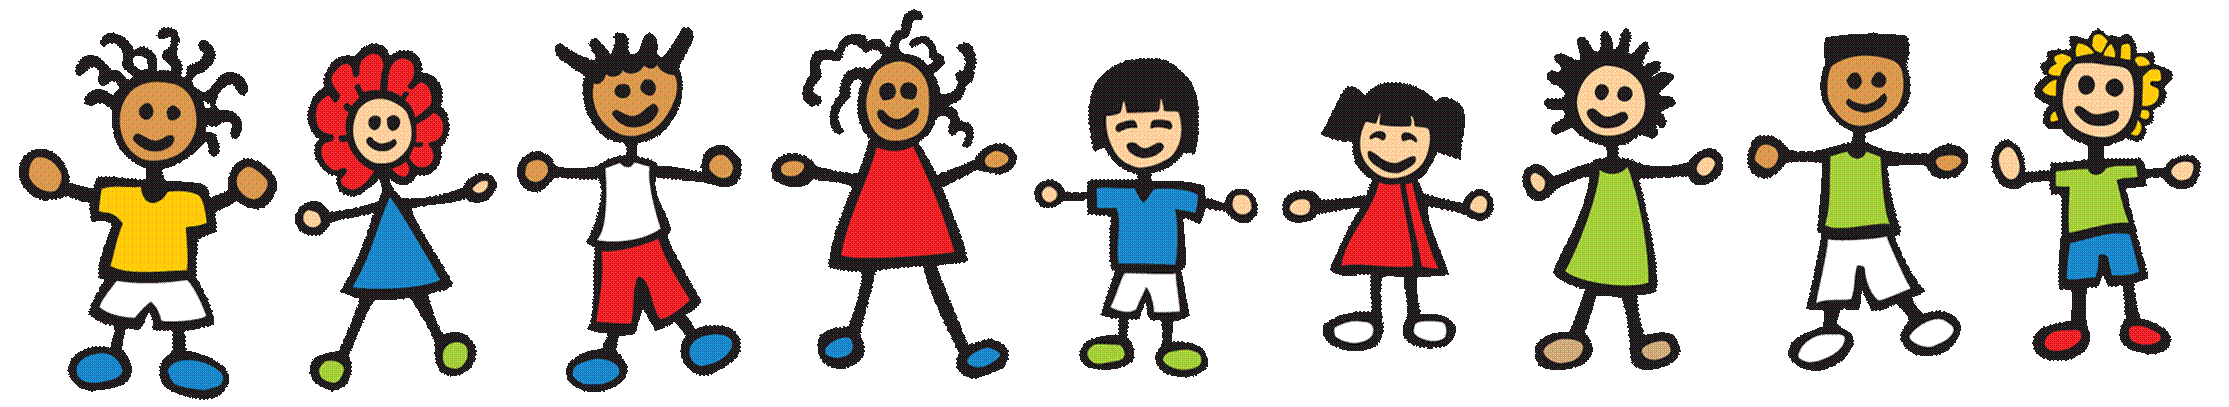 Free kindergarten clip art. Others clipart helpful person image library stock